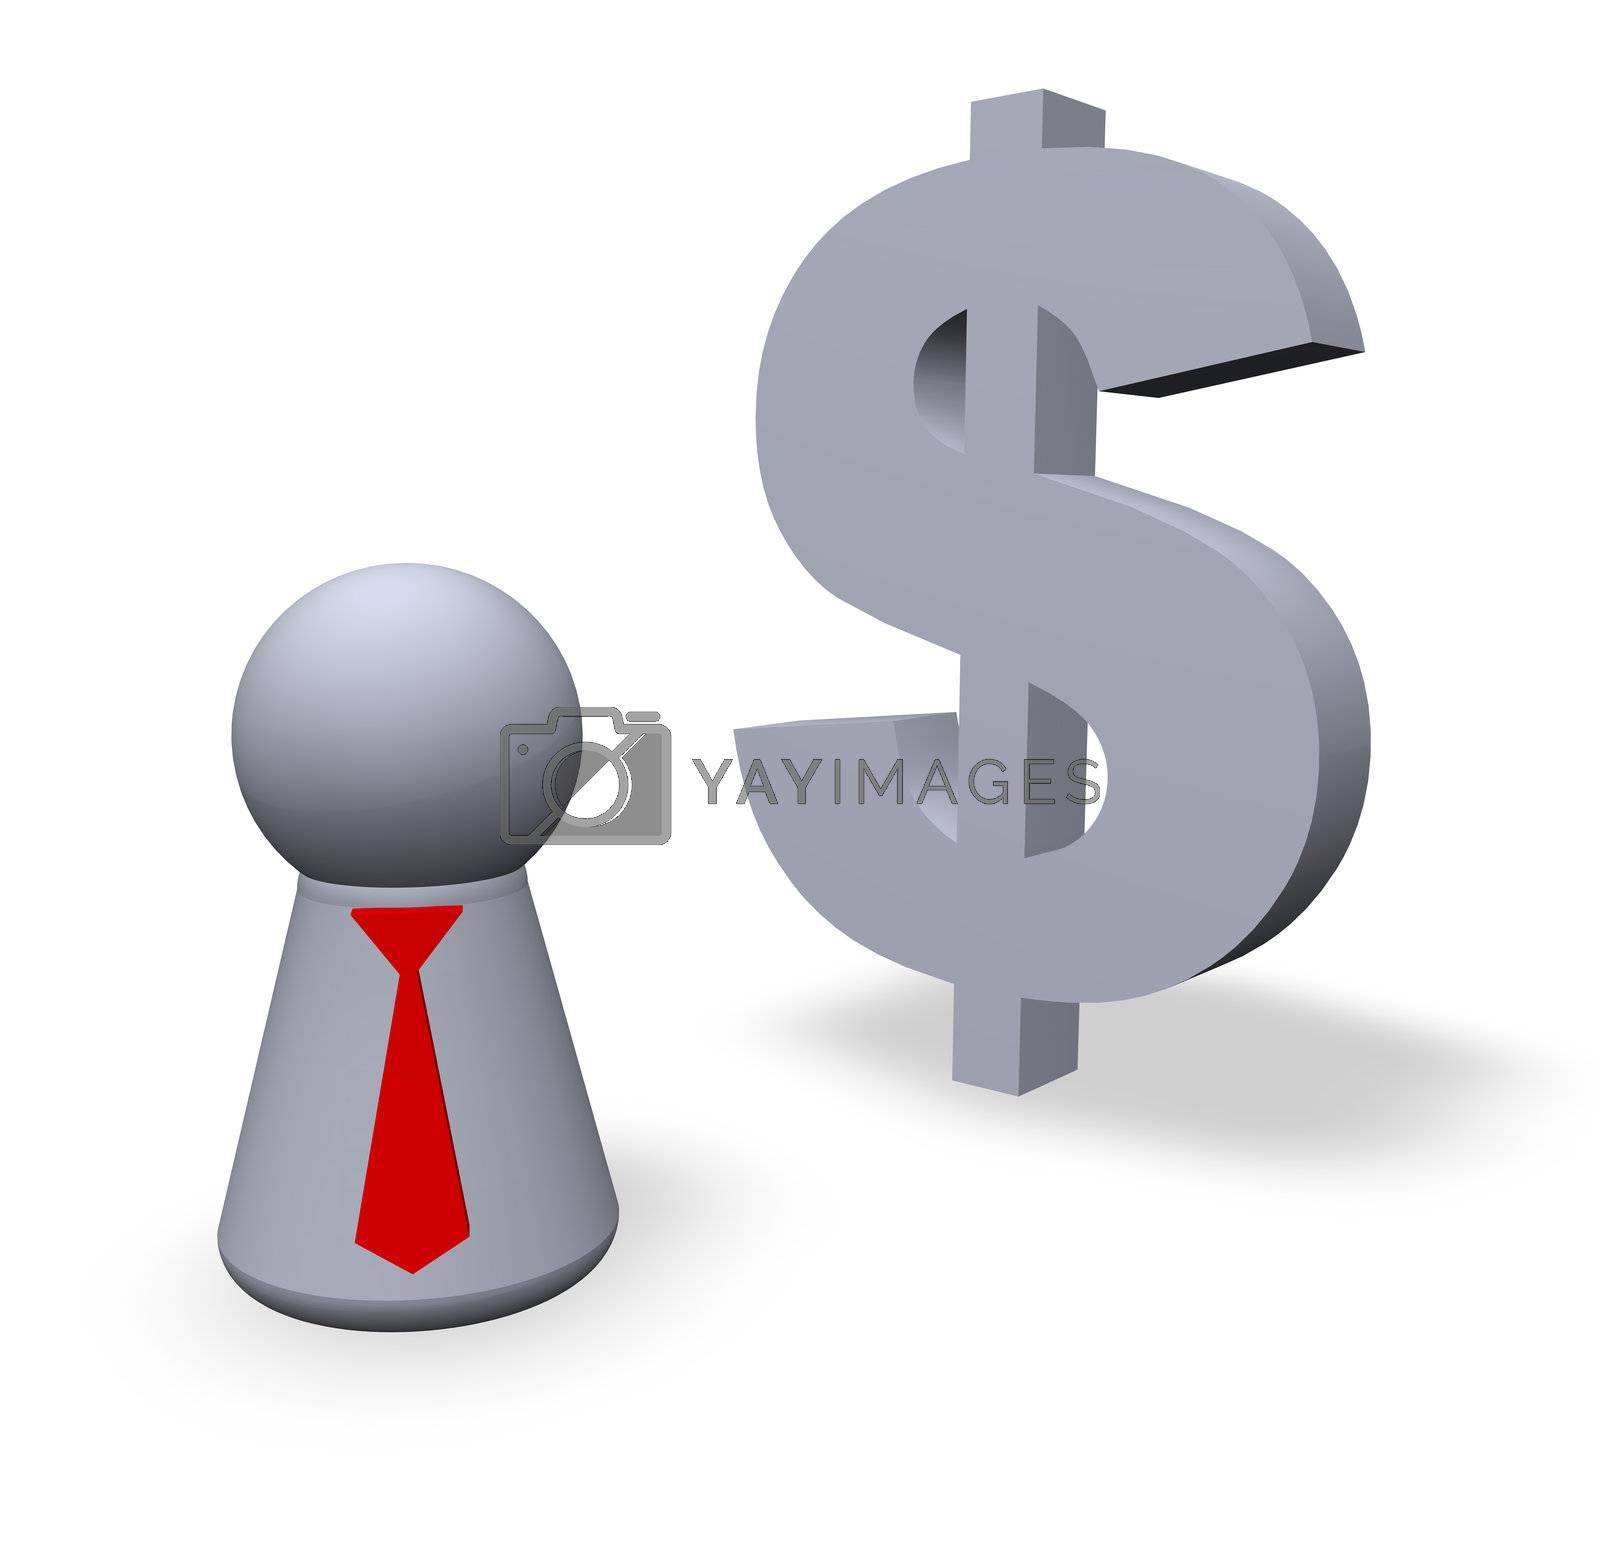 dollar symbol in 3d and play figure with red tie